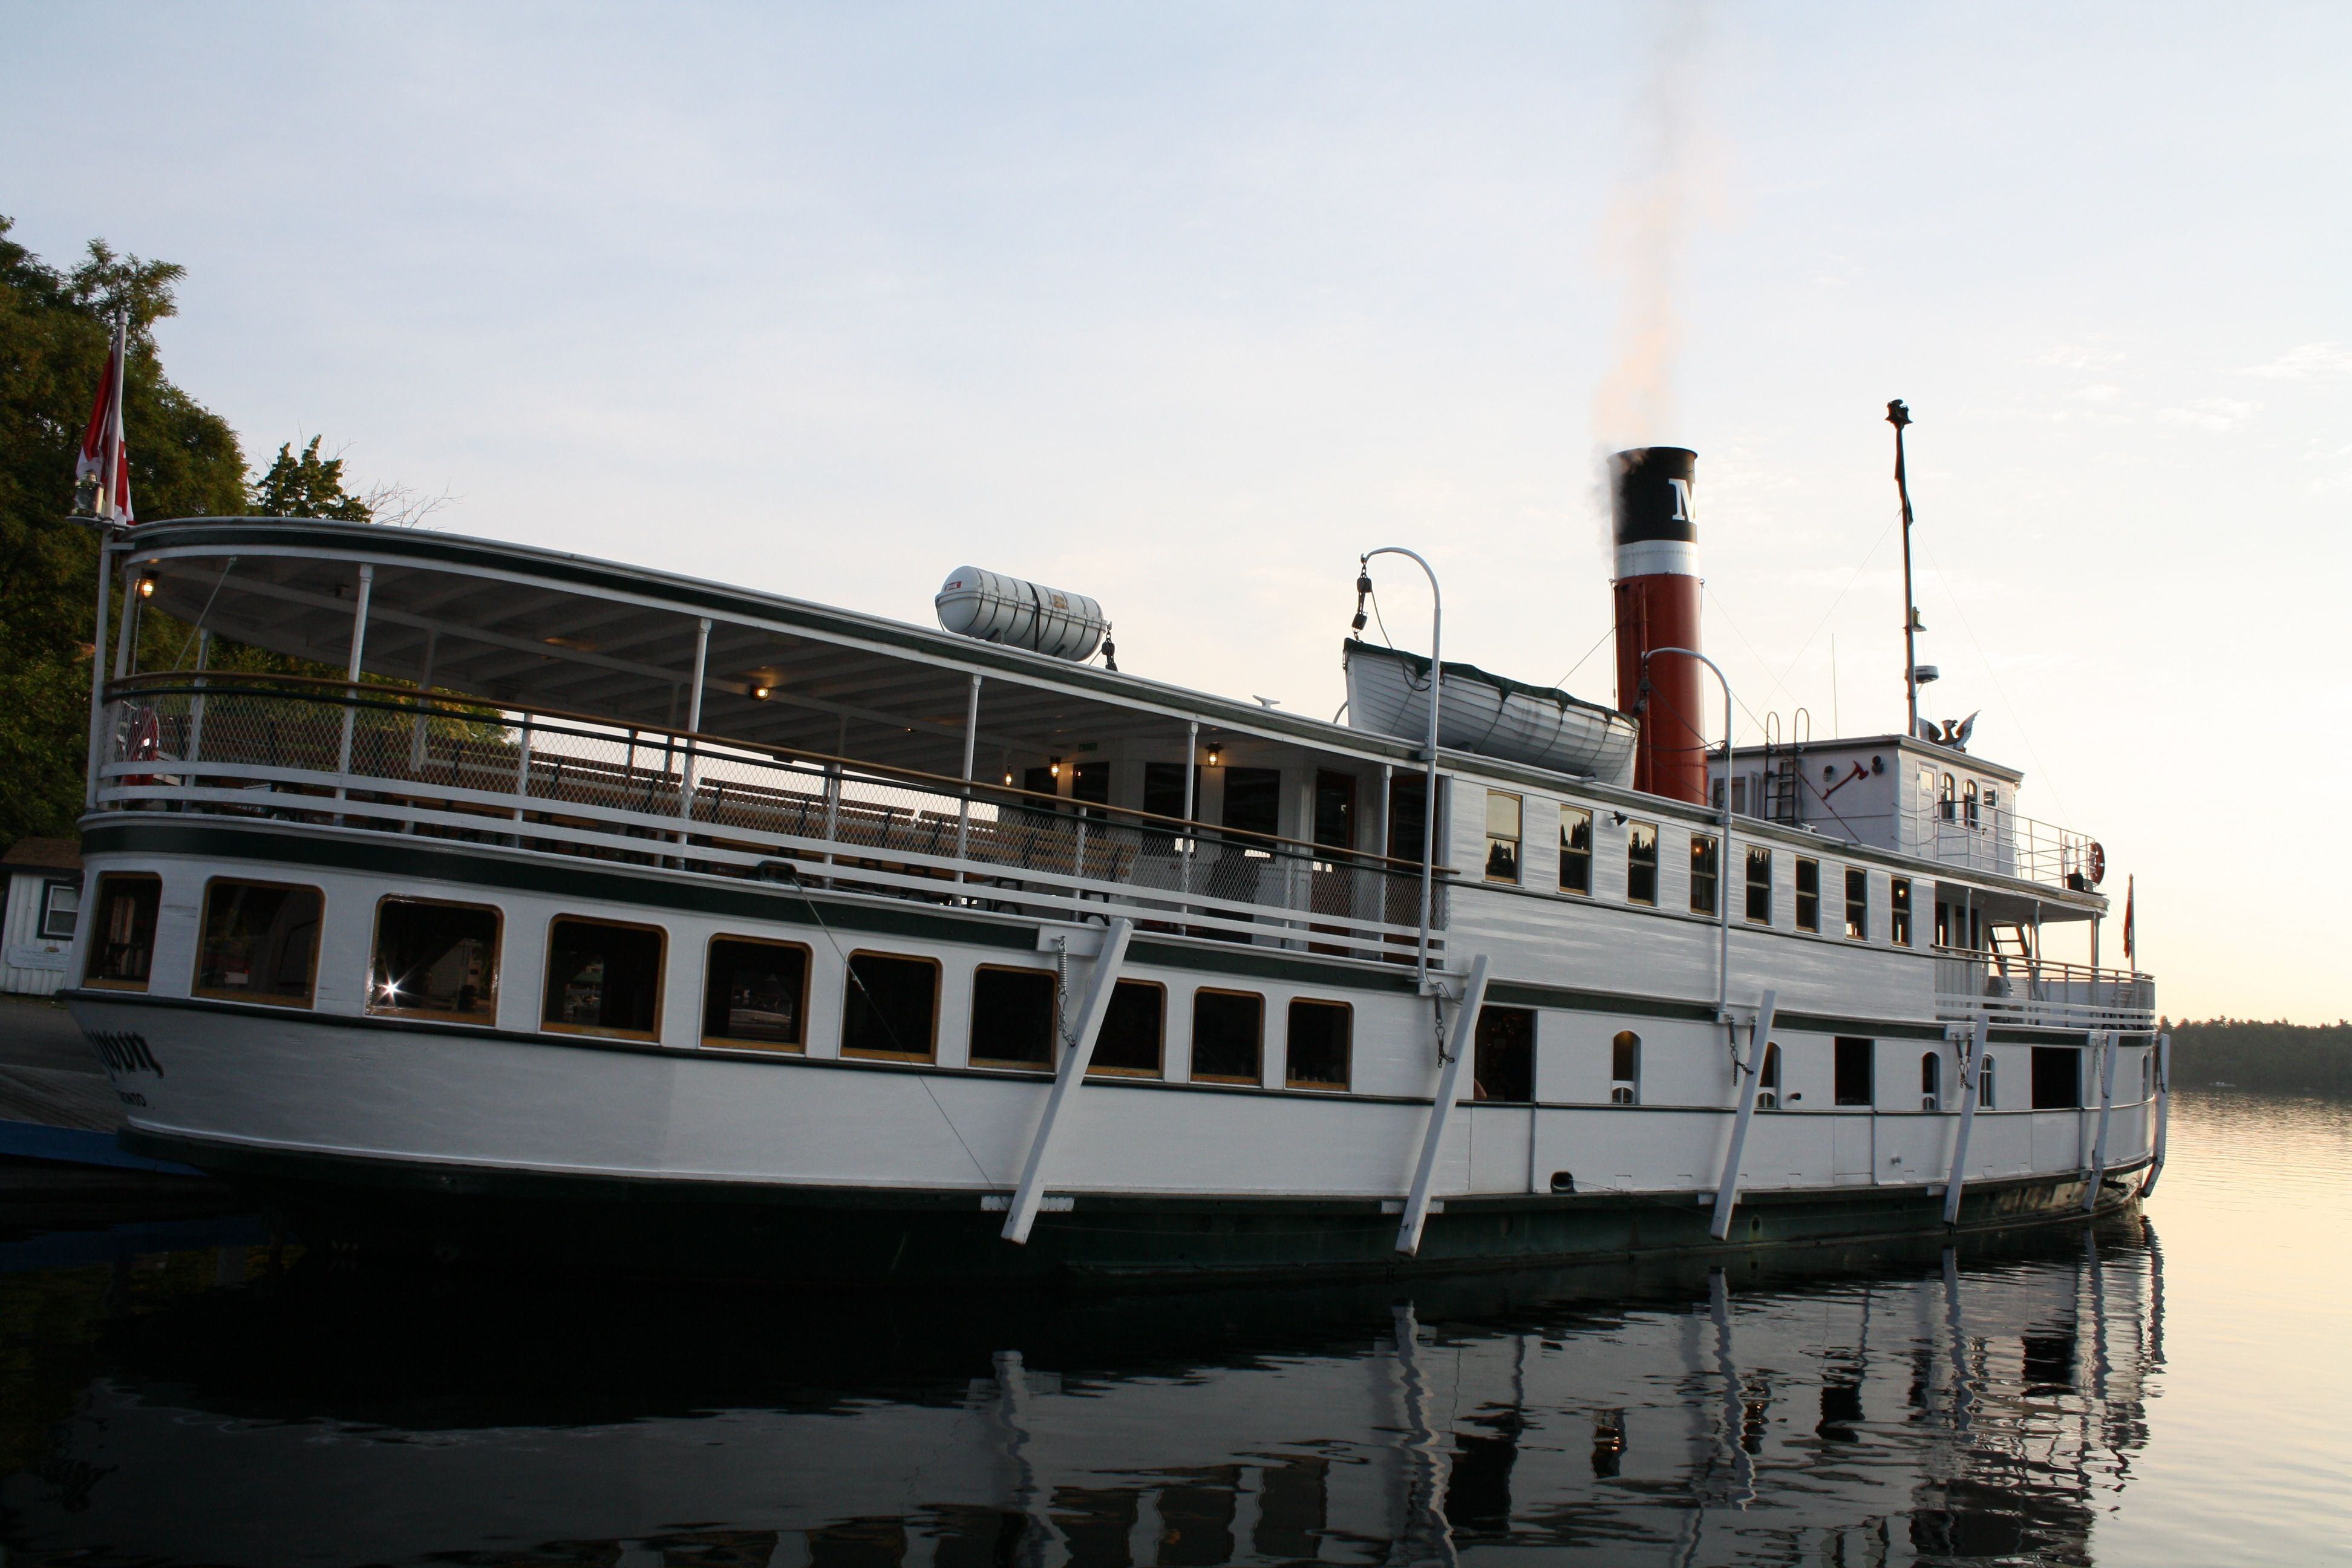 the Sequin begins to awaken from an overnight stay in Port, ready for a mid summer excursion on beautiful Lake Rosseau, my heritage, and the highly coveted and impressive 3rd lake in the chain: the awe inspiring and stunning Lake Joseph